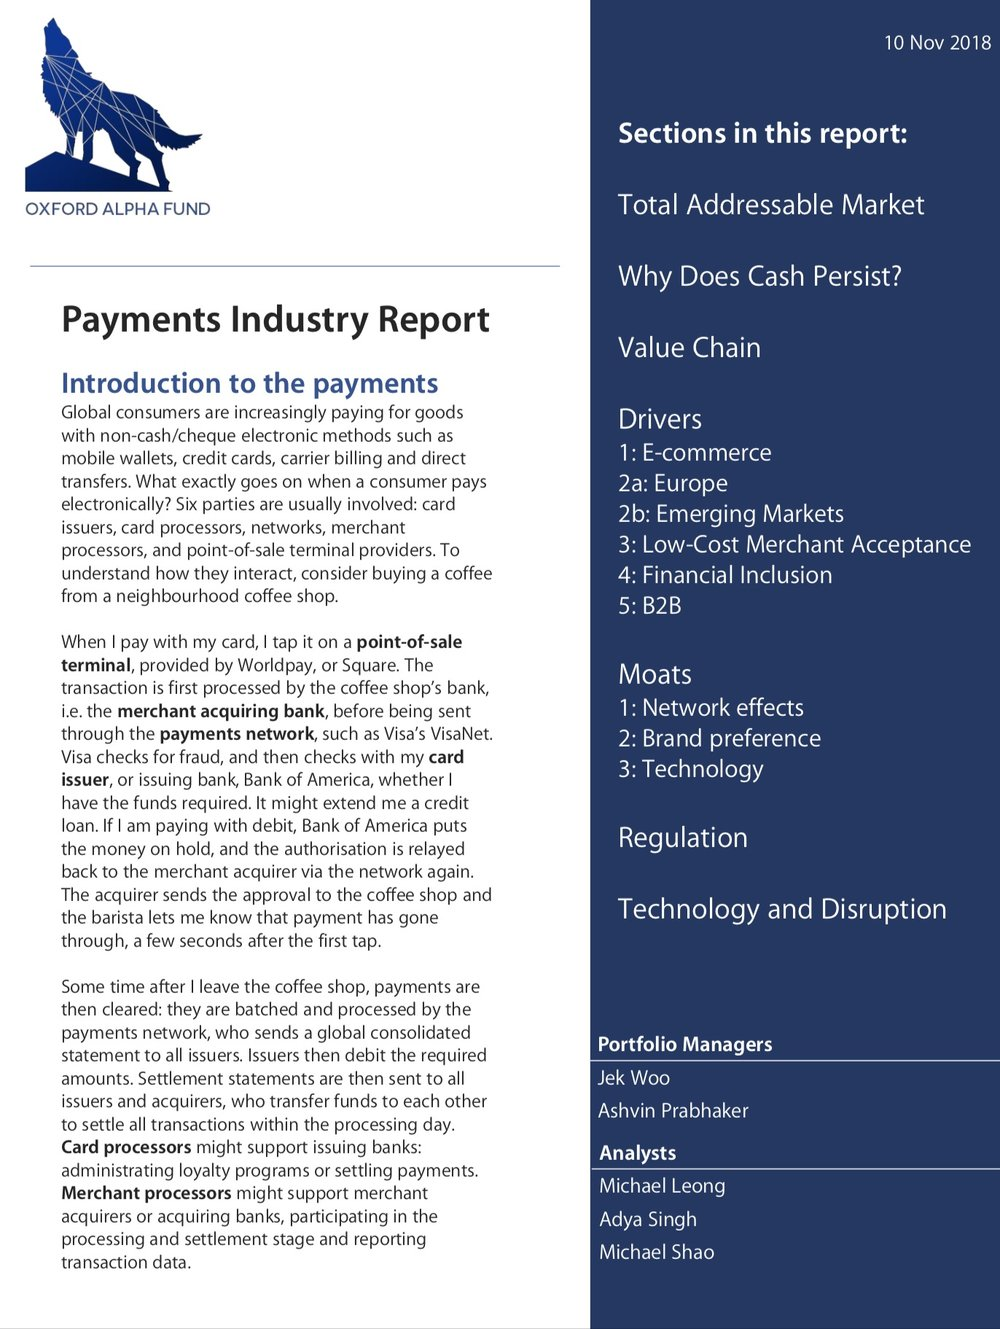 Download our latest report on the payments industry  here .